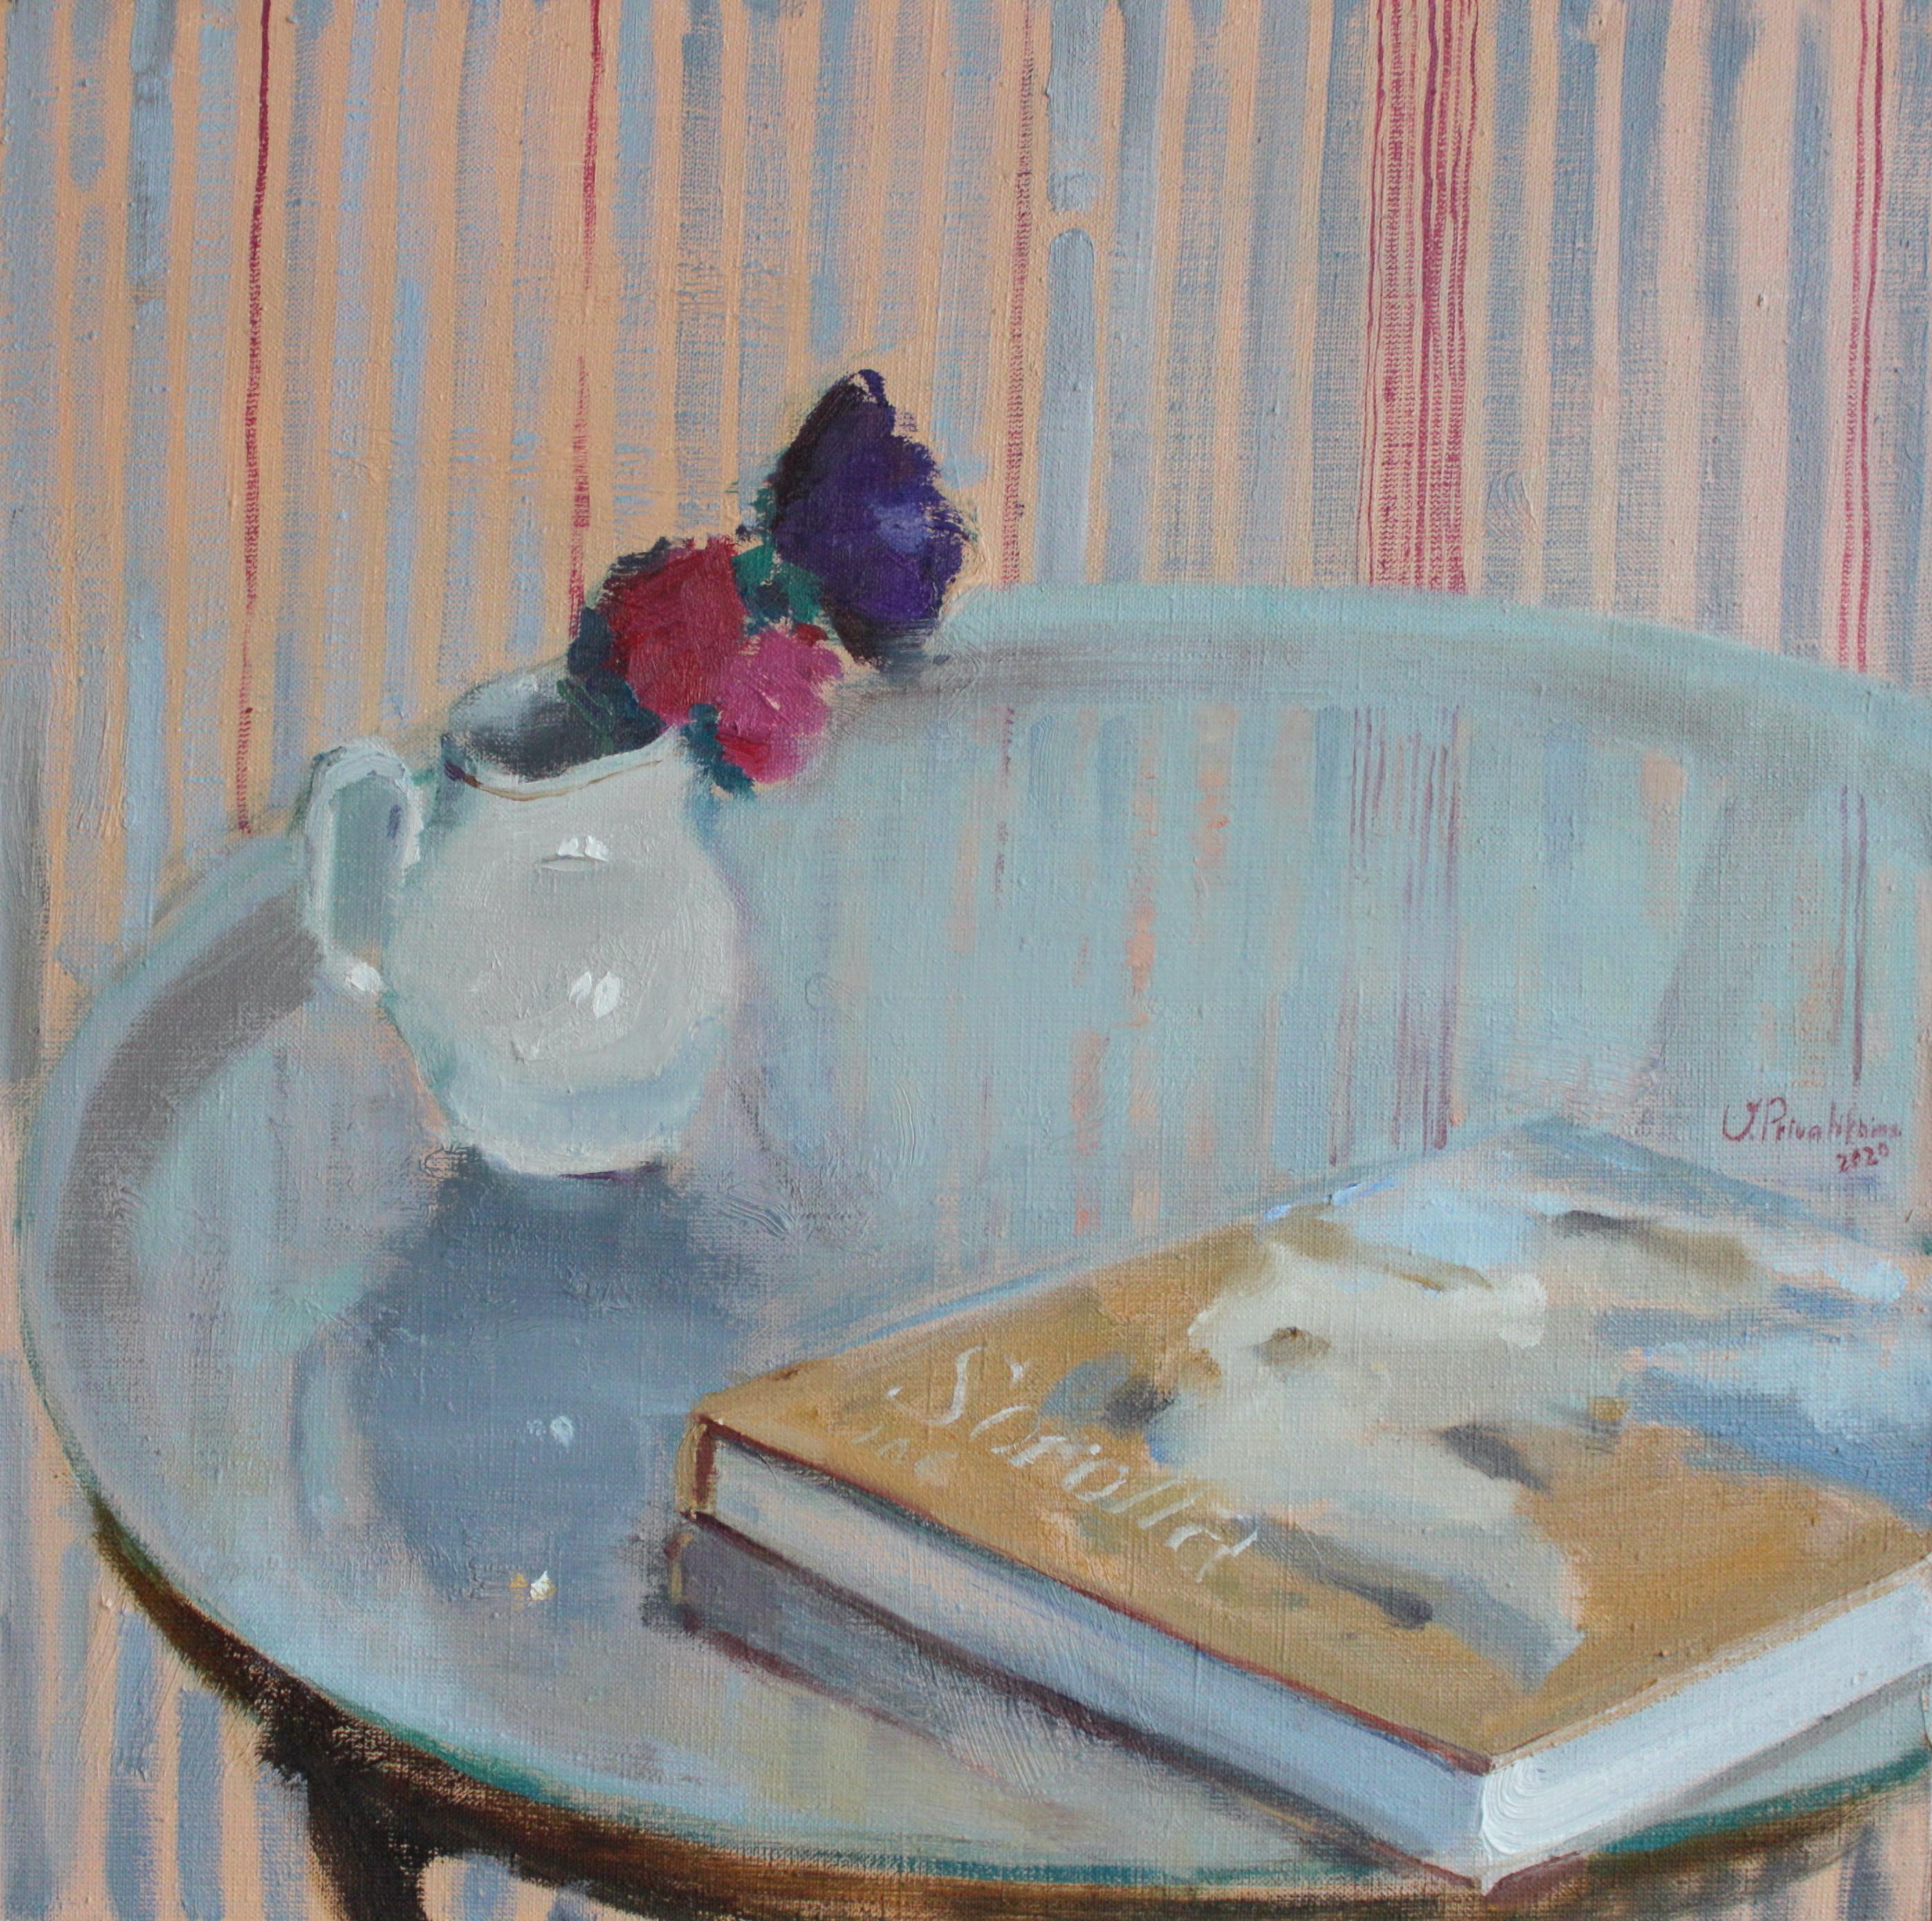 Still Life With Sorolla's Album - 21st Century Contemporary Oil Painting